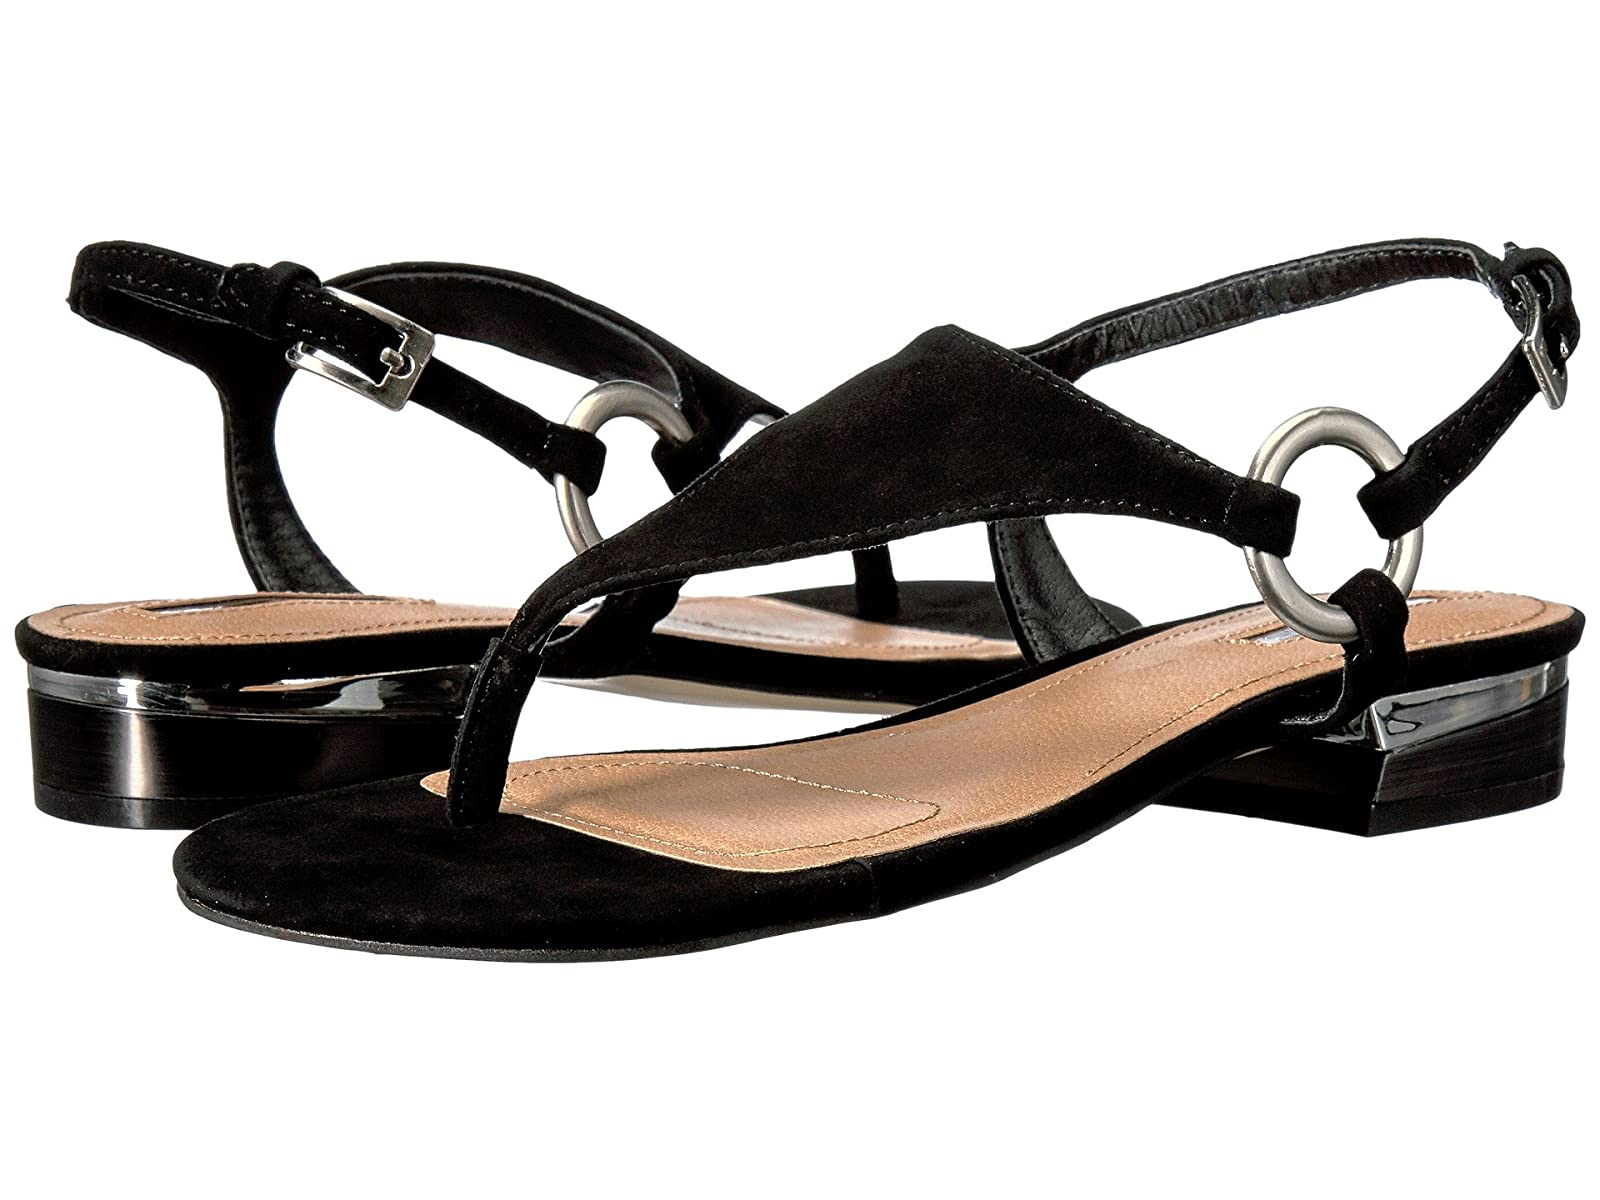 Tahari LacieCheap and distinctive eye-catching shoes